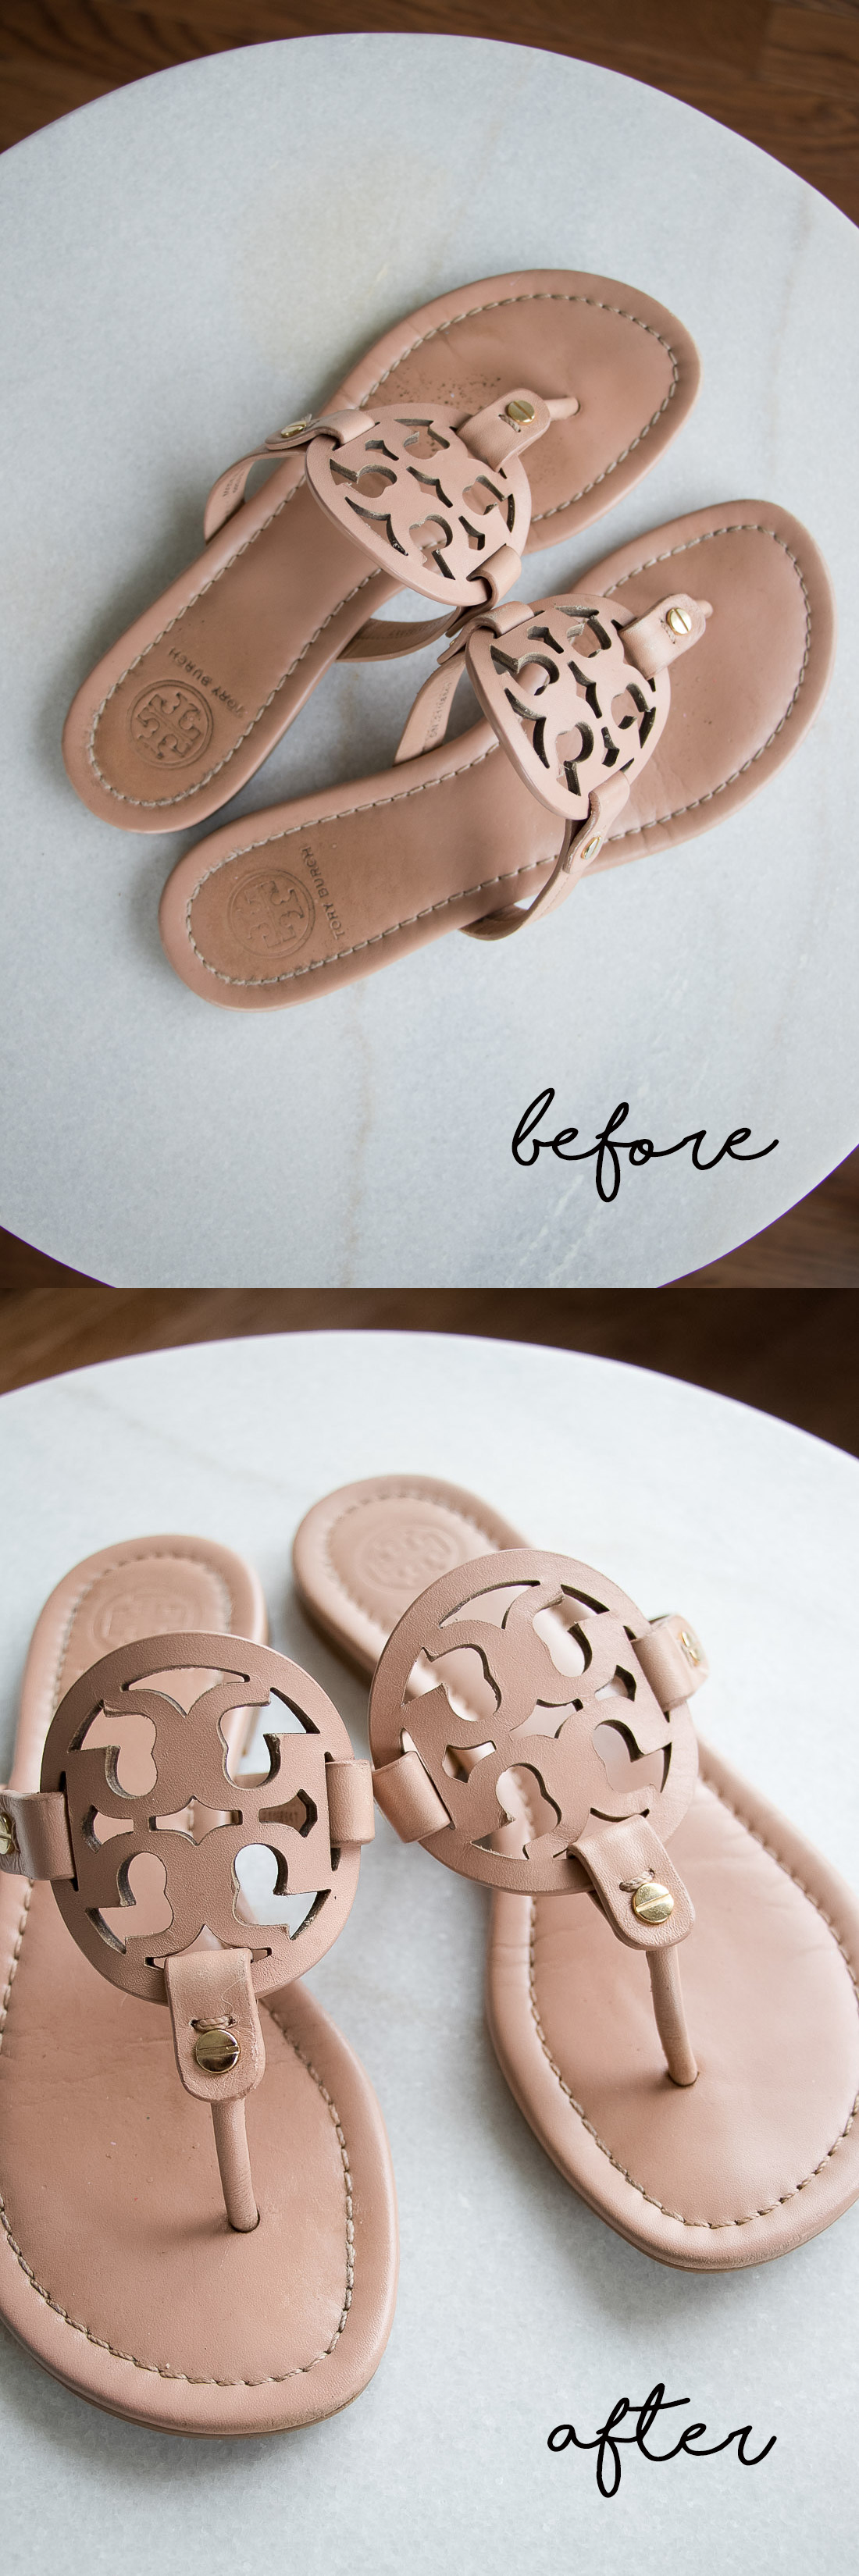 How To Clean Leather Sandals Tory Burch Miller Sandals